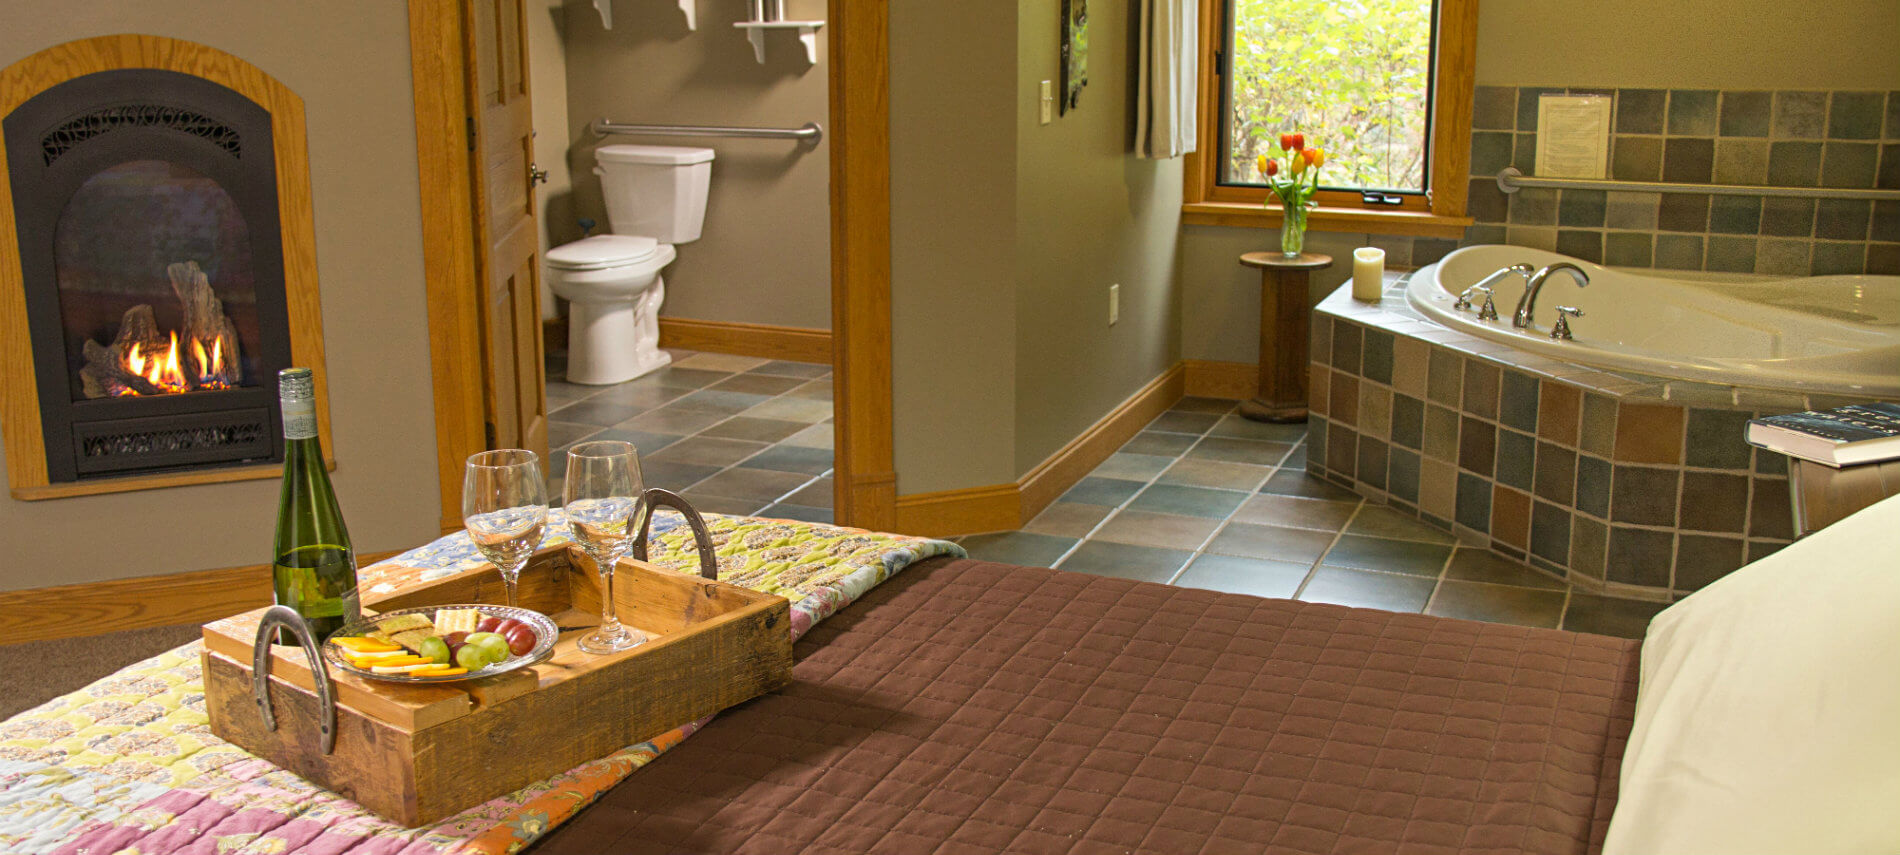 Tan guest room with fireplace, bed topped with tray of wine, cheese, crackers and grapes, and view of corner soaking tub